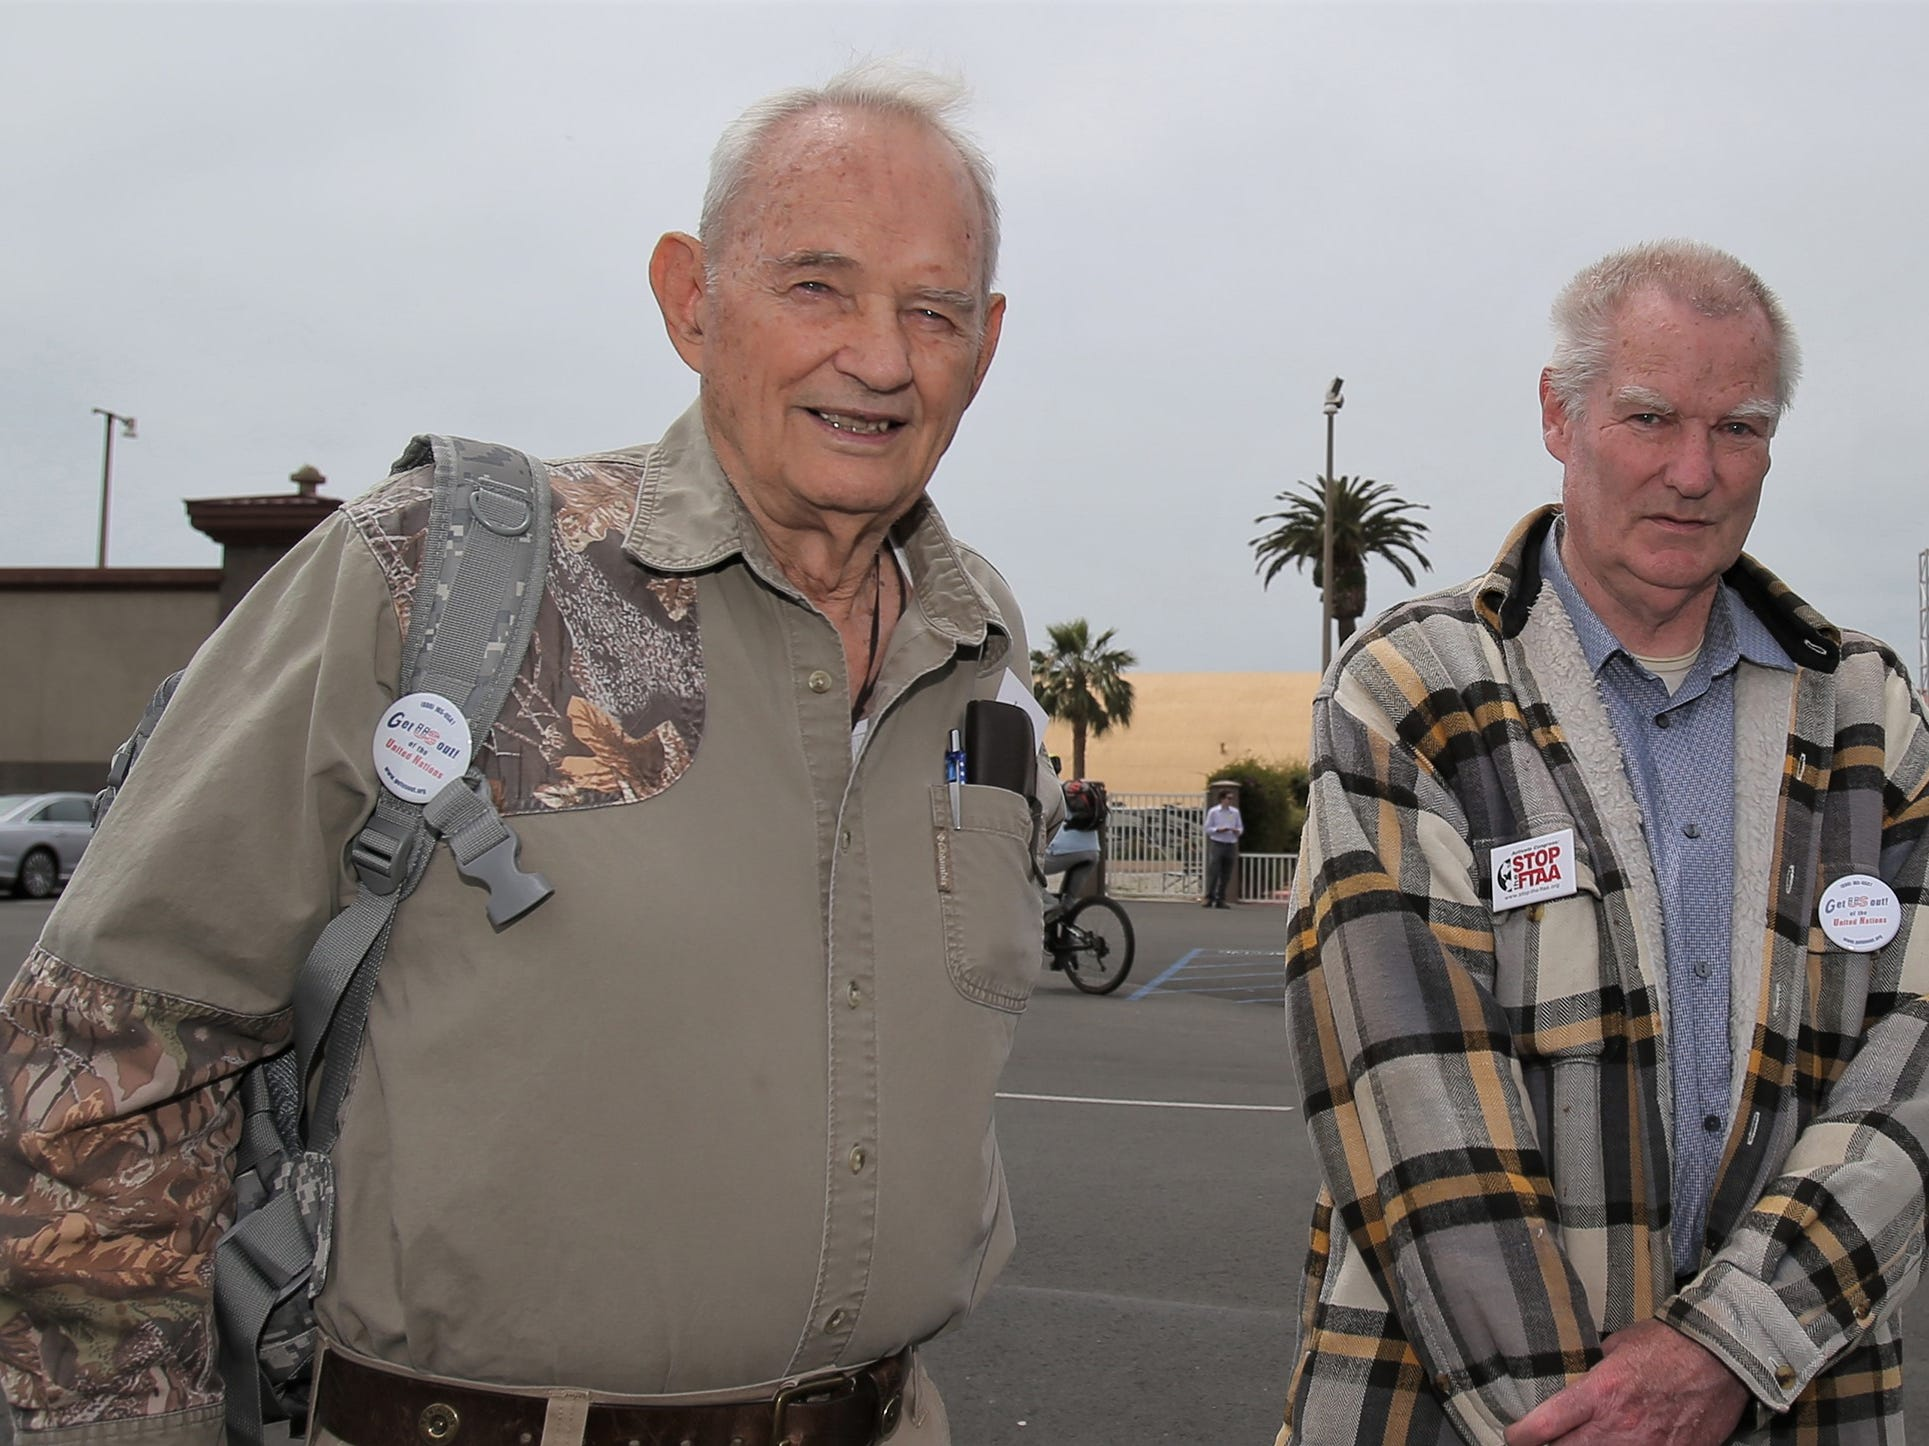 William Peck, left, and Robert Huber were among the supporters and shoppers at the Crossroads of the West Gun Show that was held Saturday at the Ventura County Fairgrounds. Peck and Huber hope that the show doesn't go away.